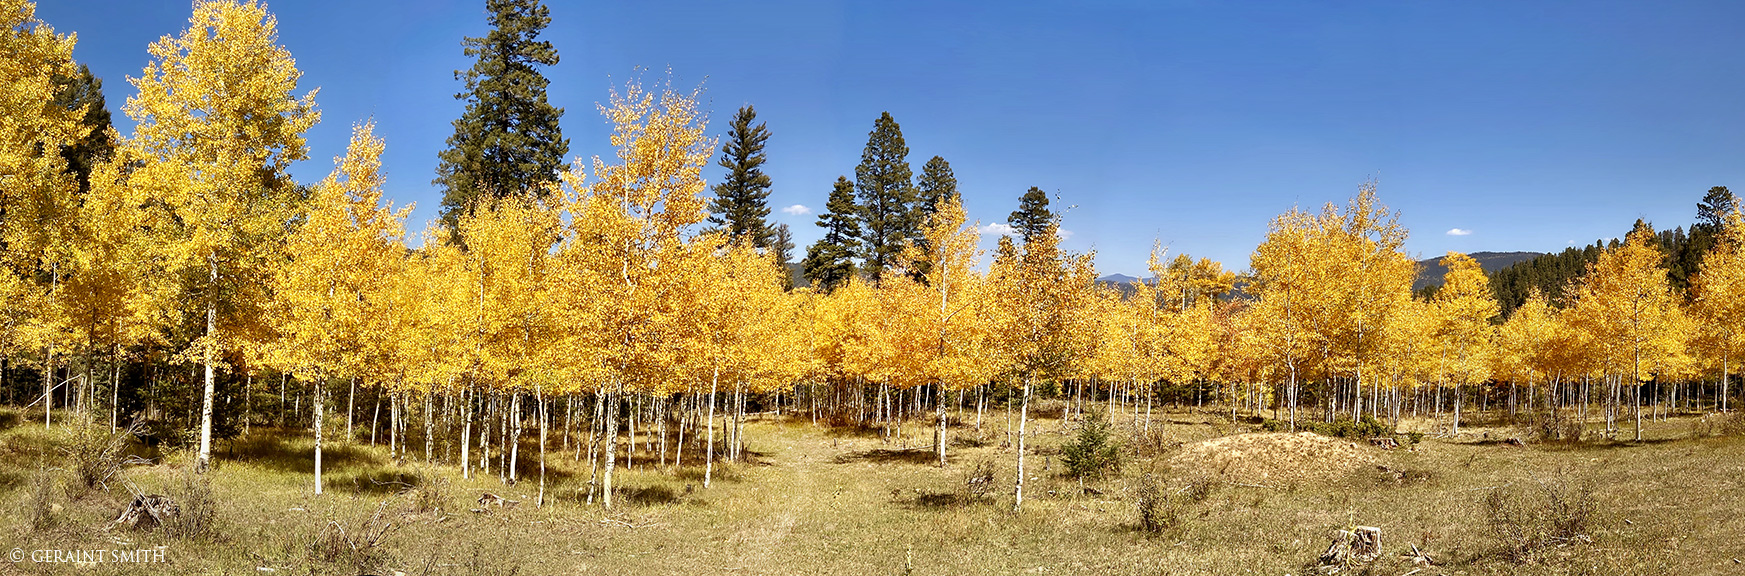 Carson National Forest, FR 437 Garcia Park, New Mexico